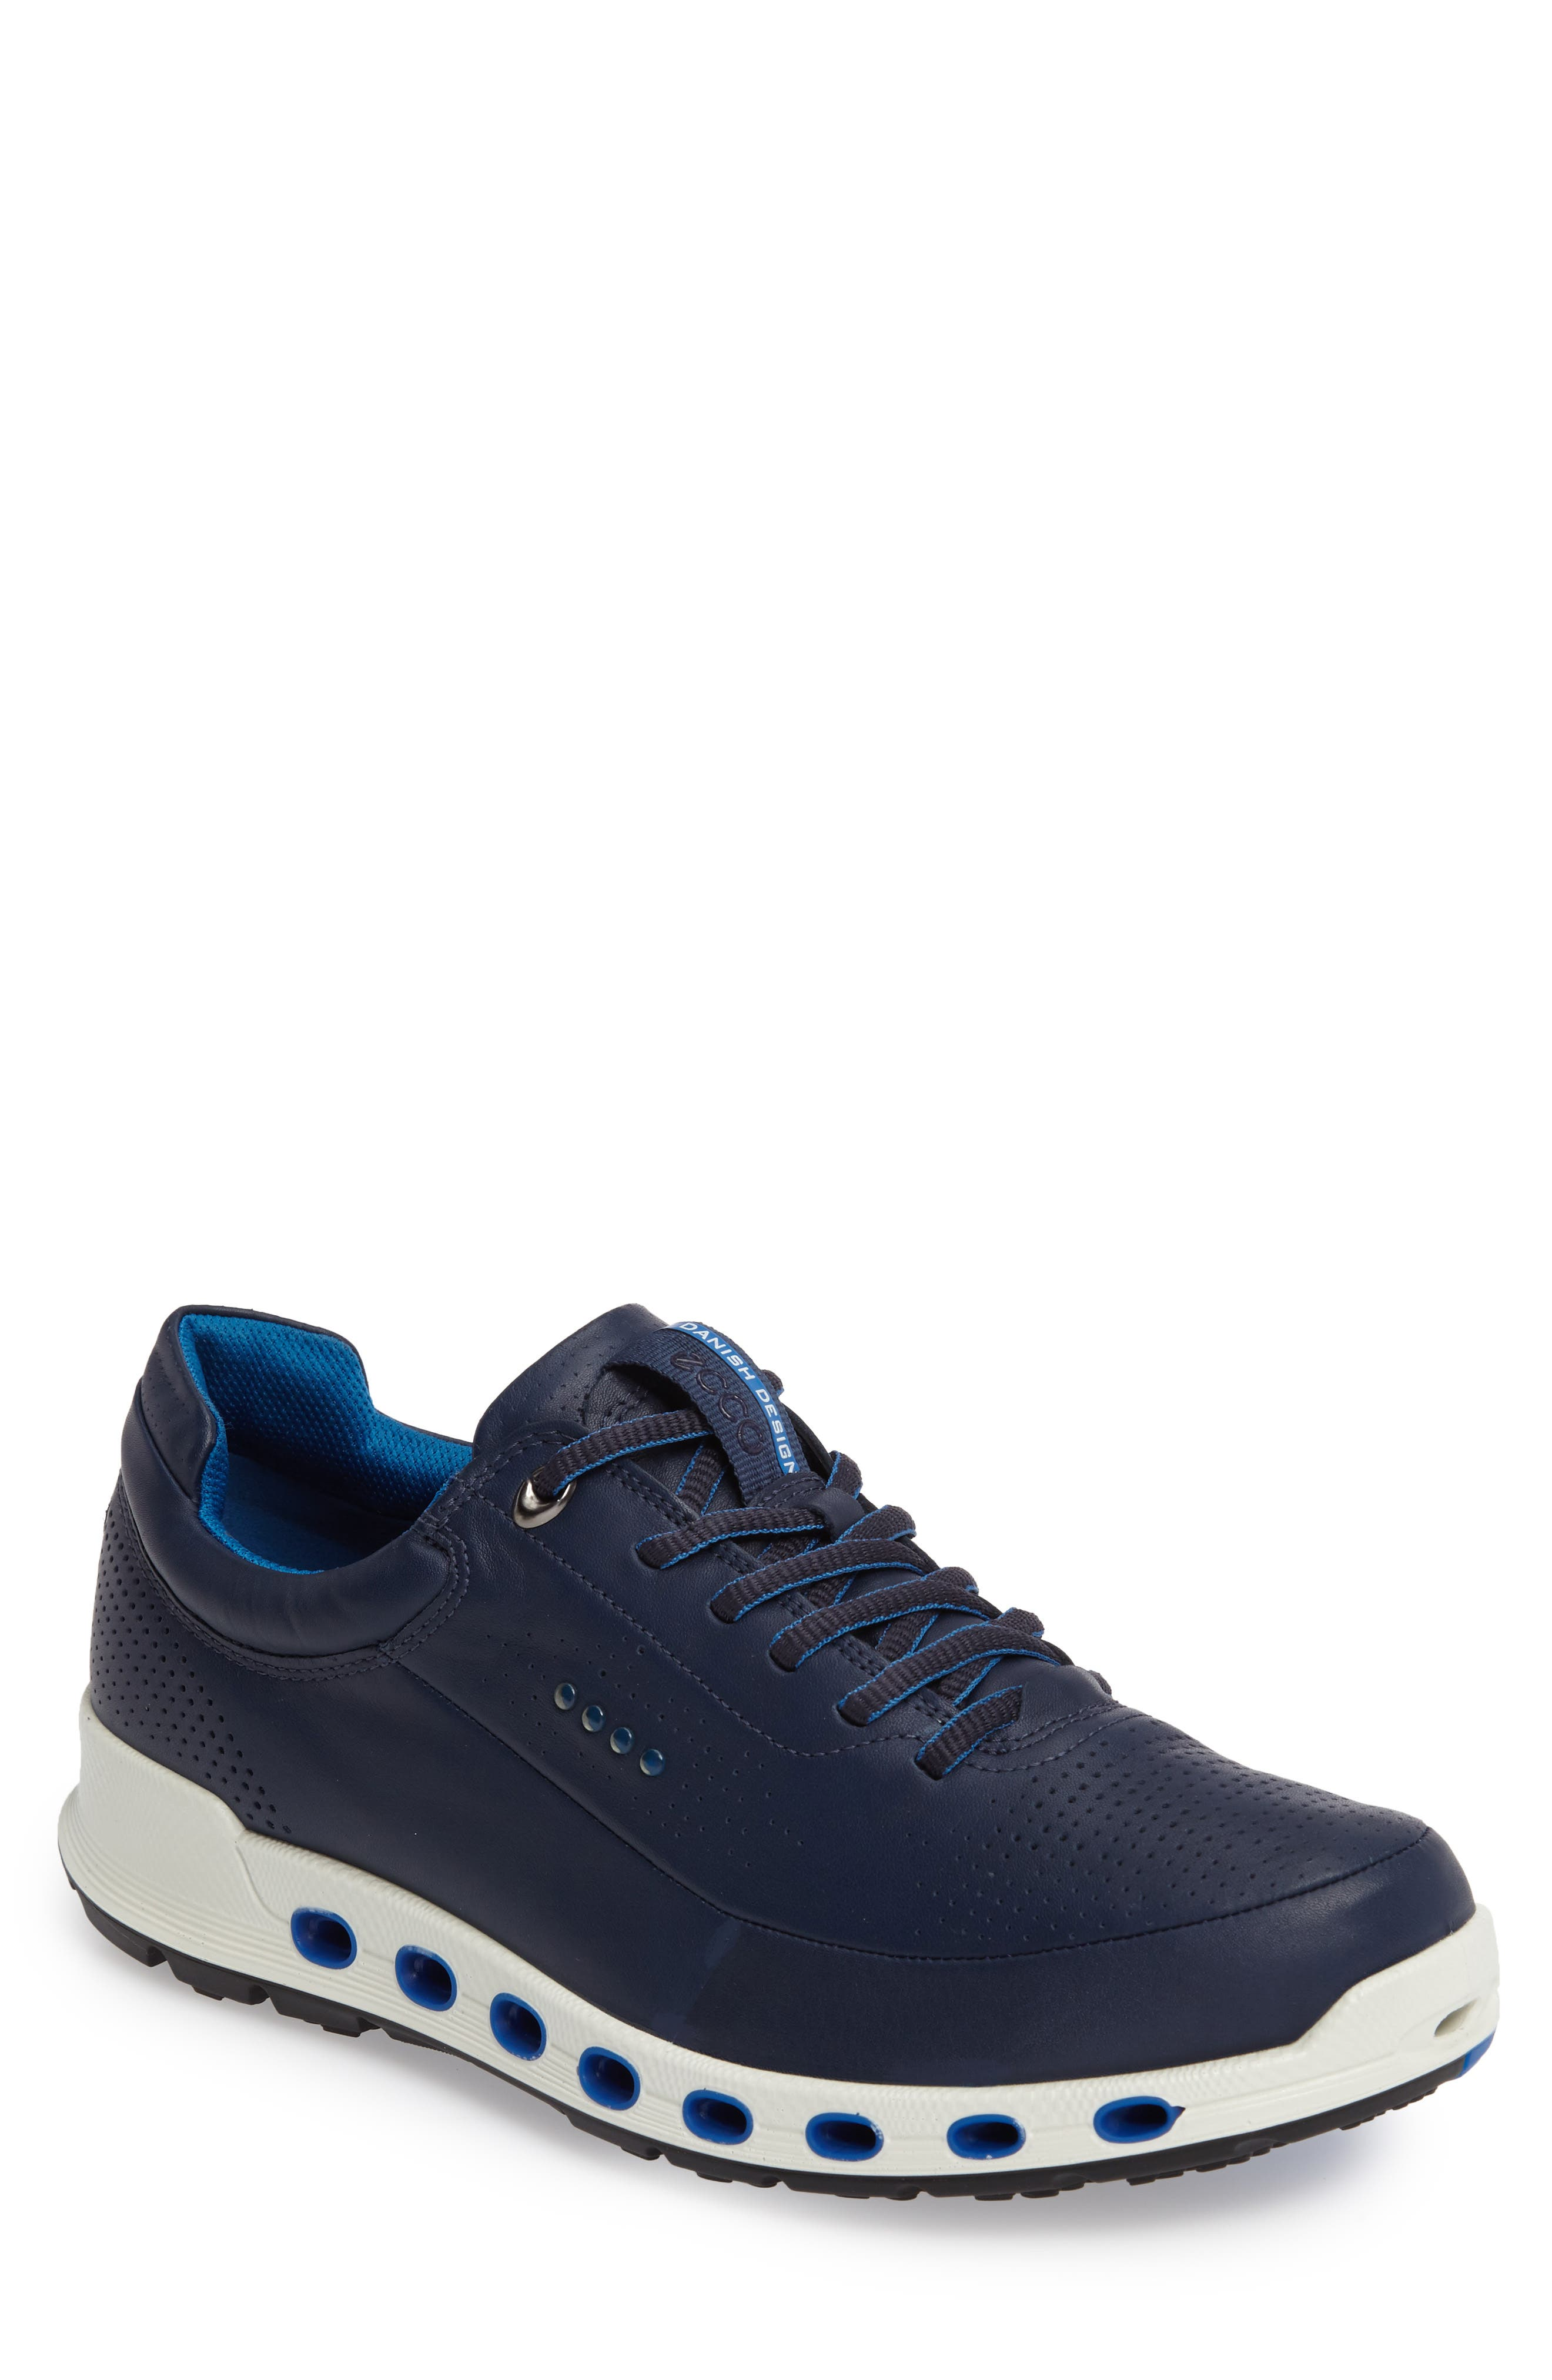 Cool 2.0 Leather GTX Sneaker,                             Main thumbnail 1, color,                             NAVY